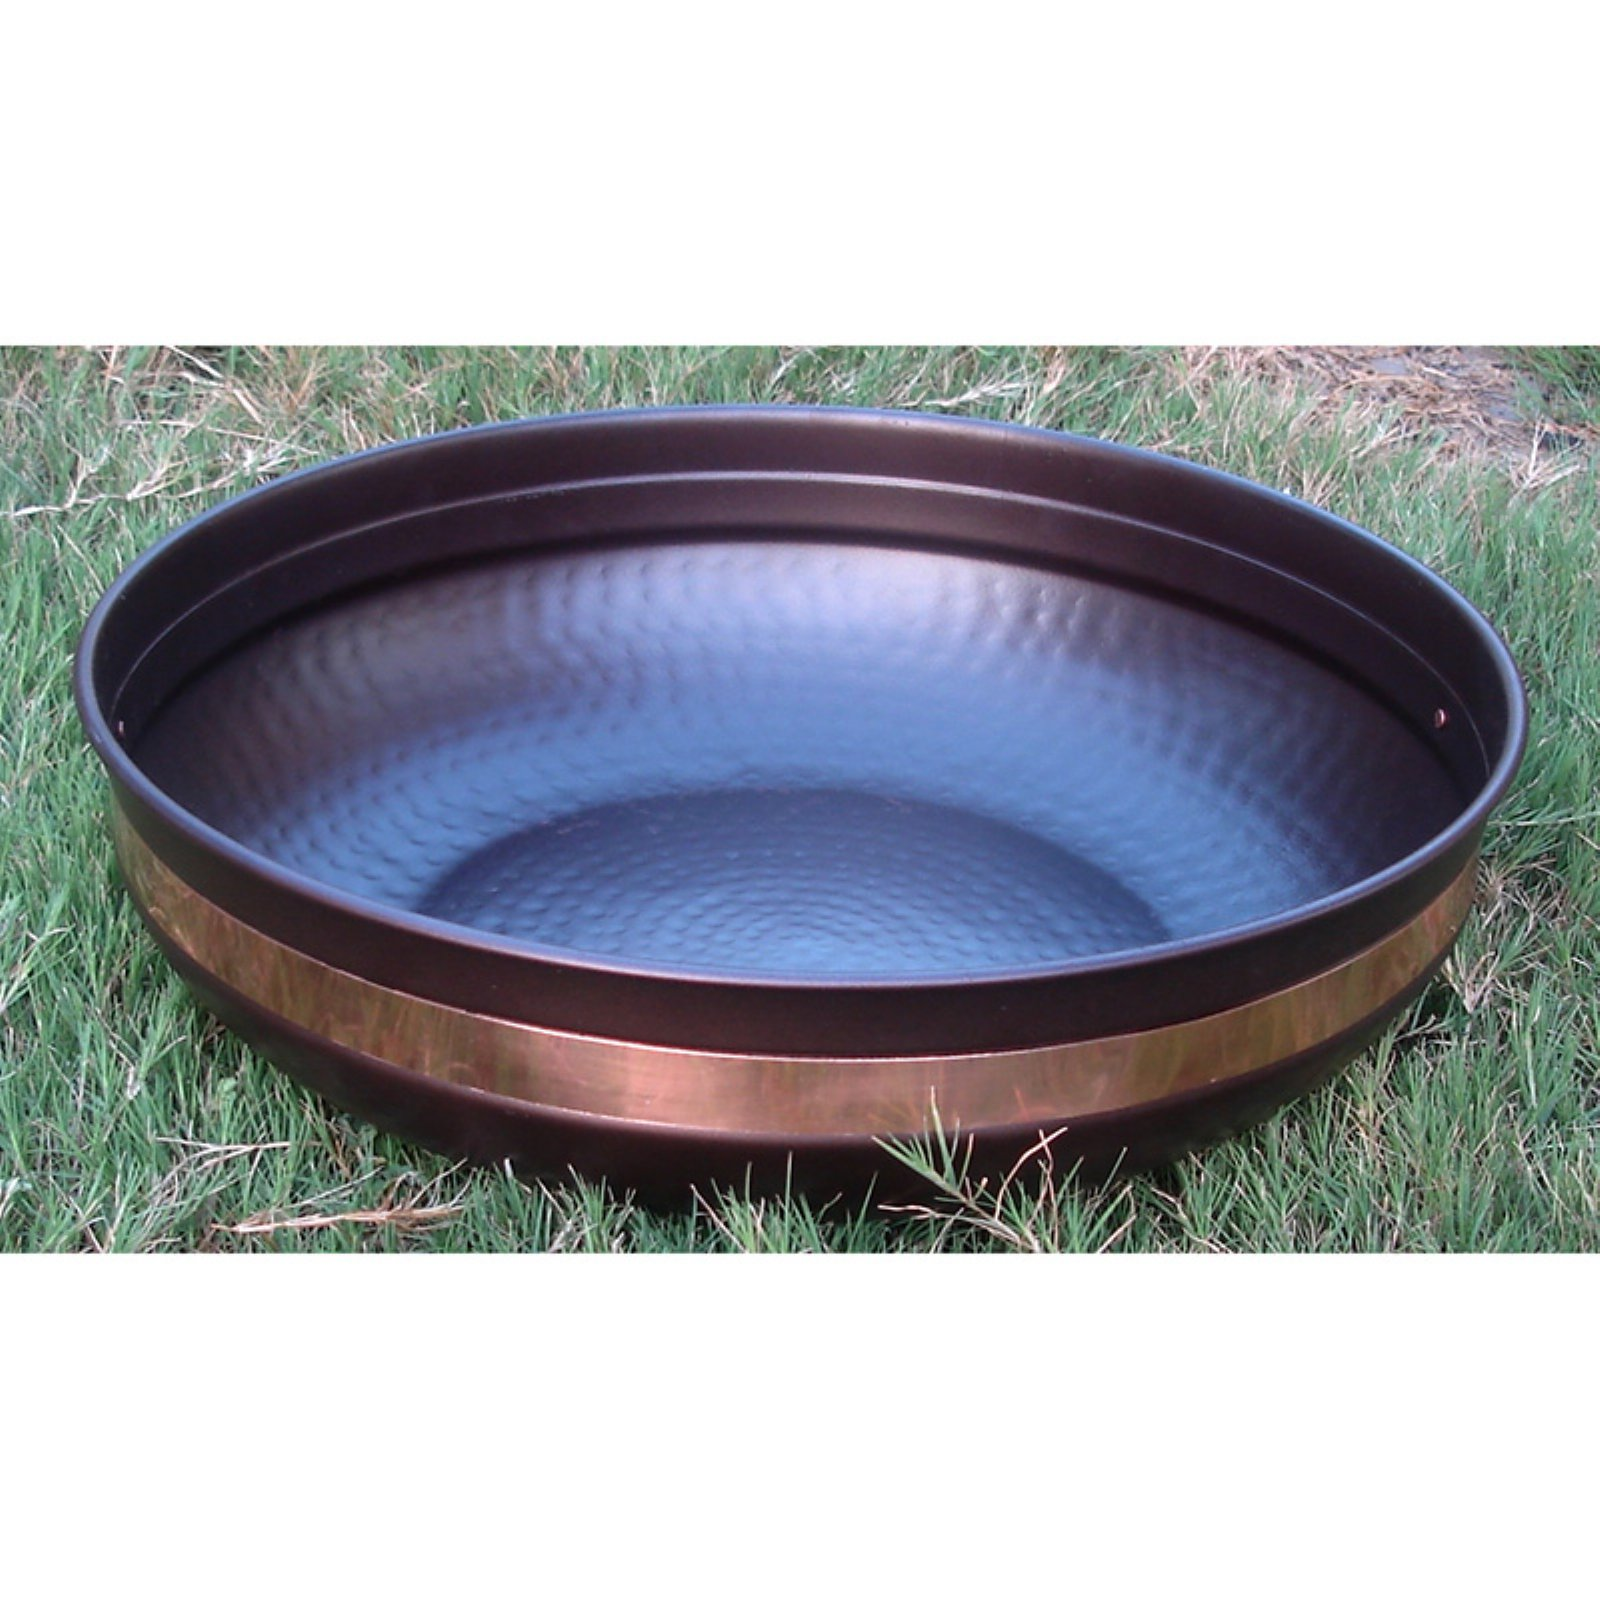 Monarch Hammered Basin with Pure Copper Band - 14.5-Inch Diameter